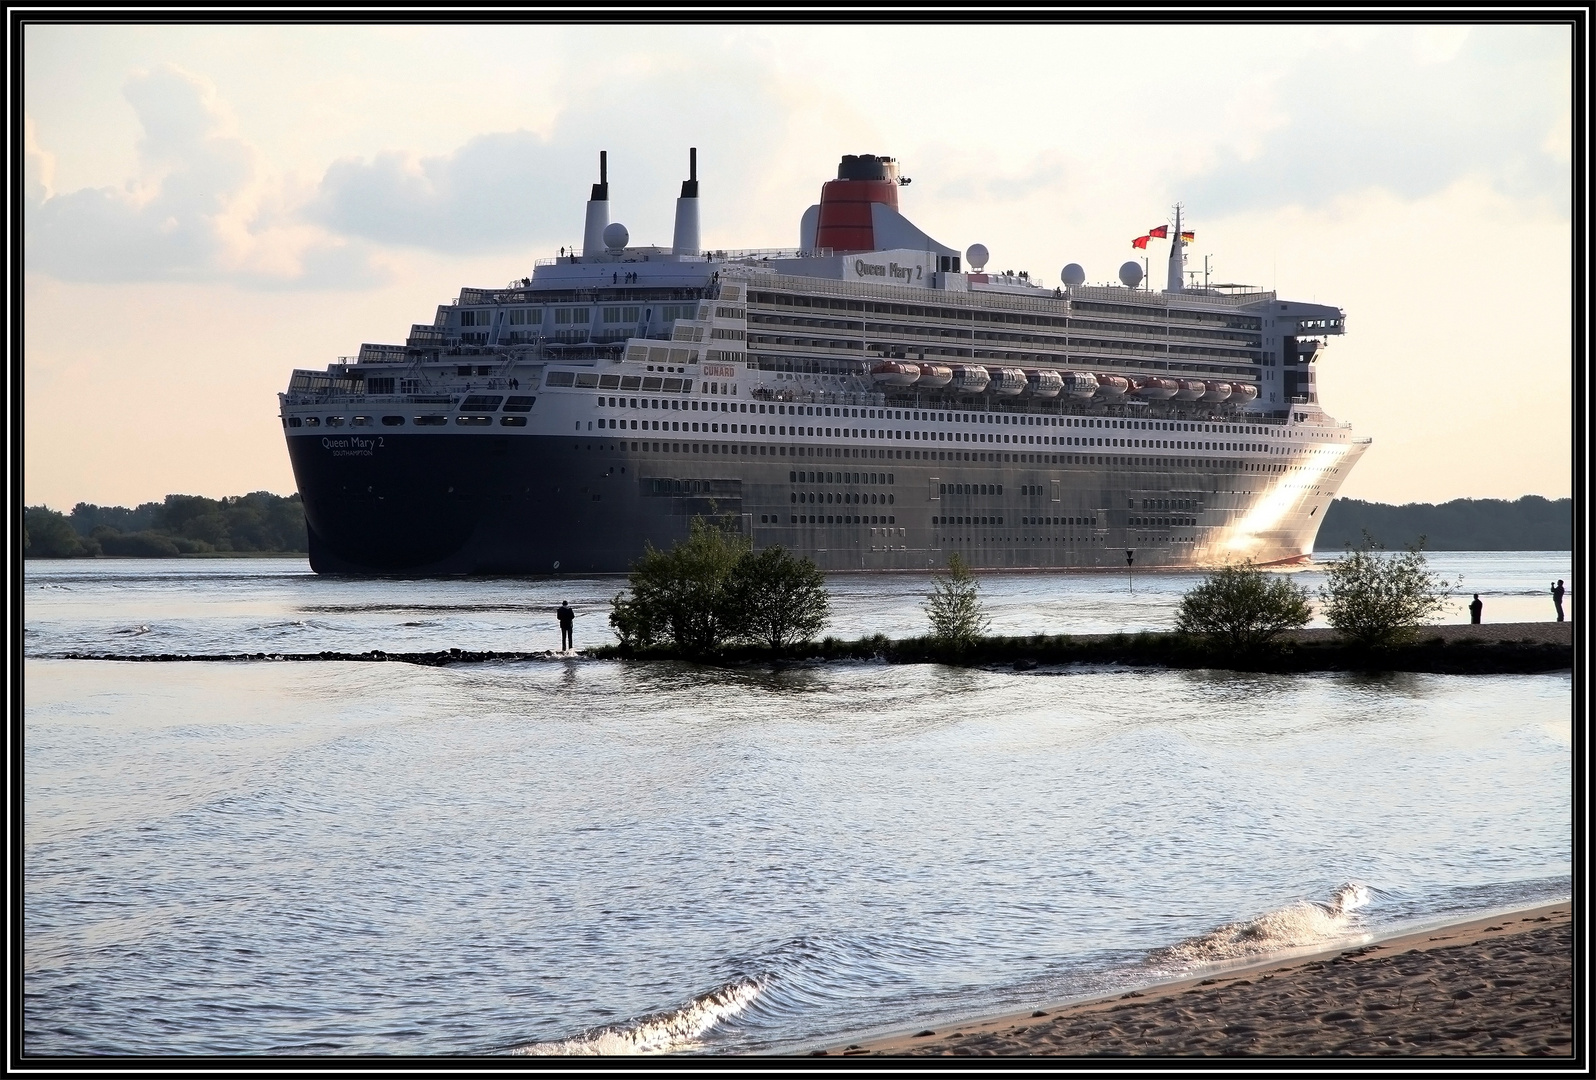 Die Queen Mary 2